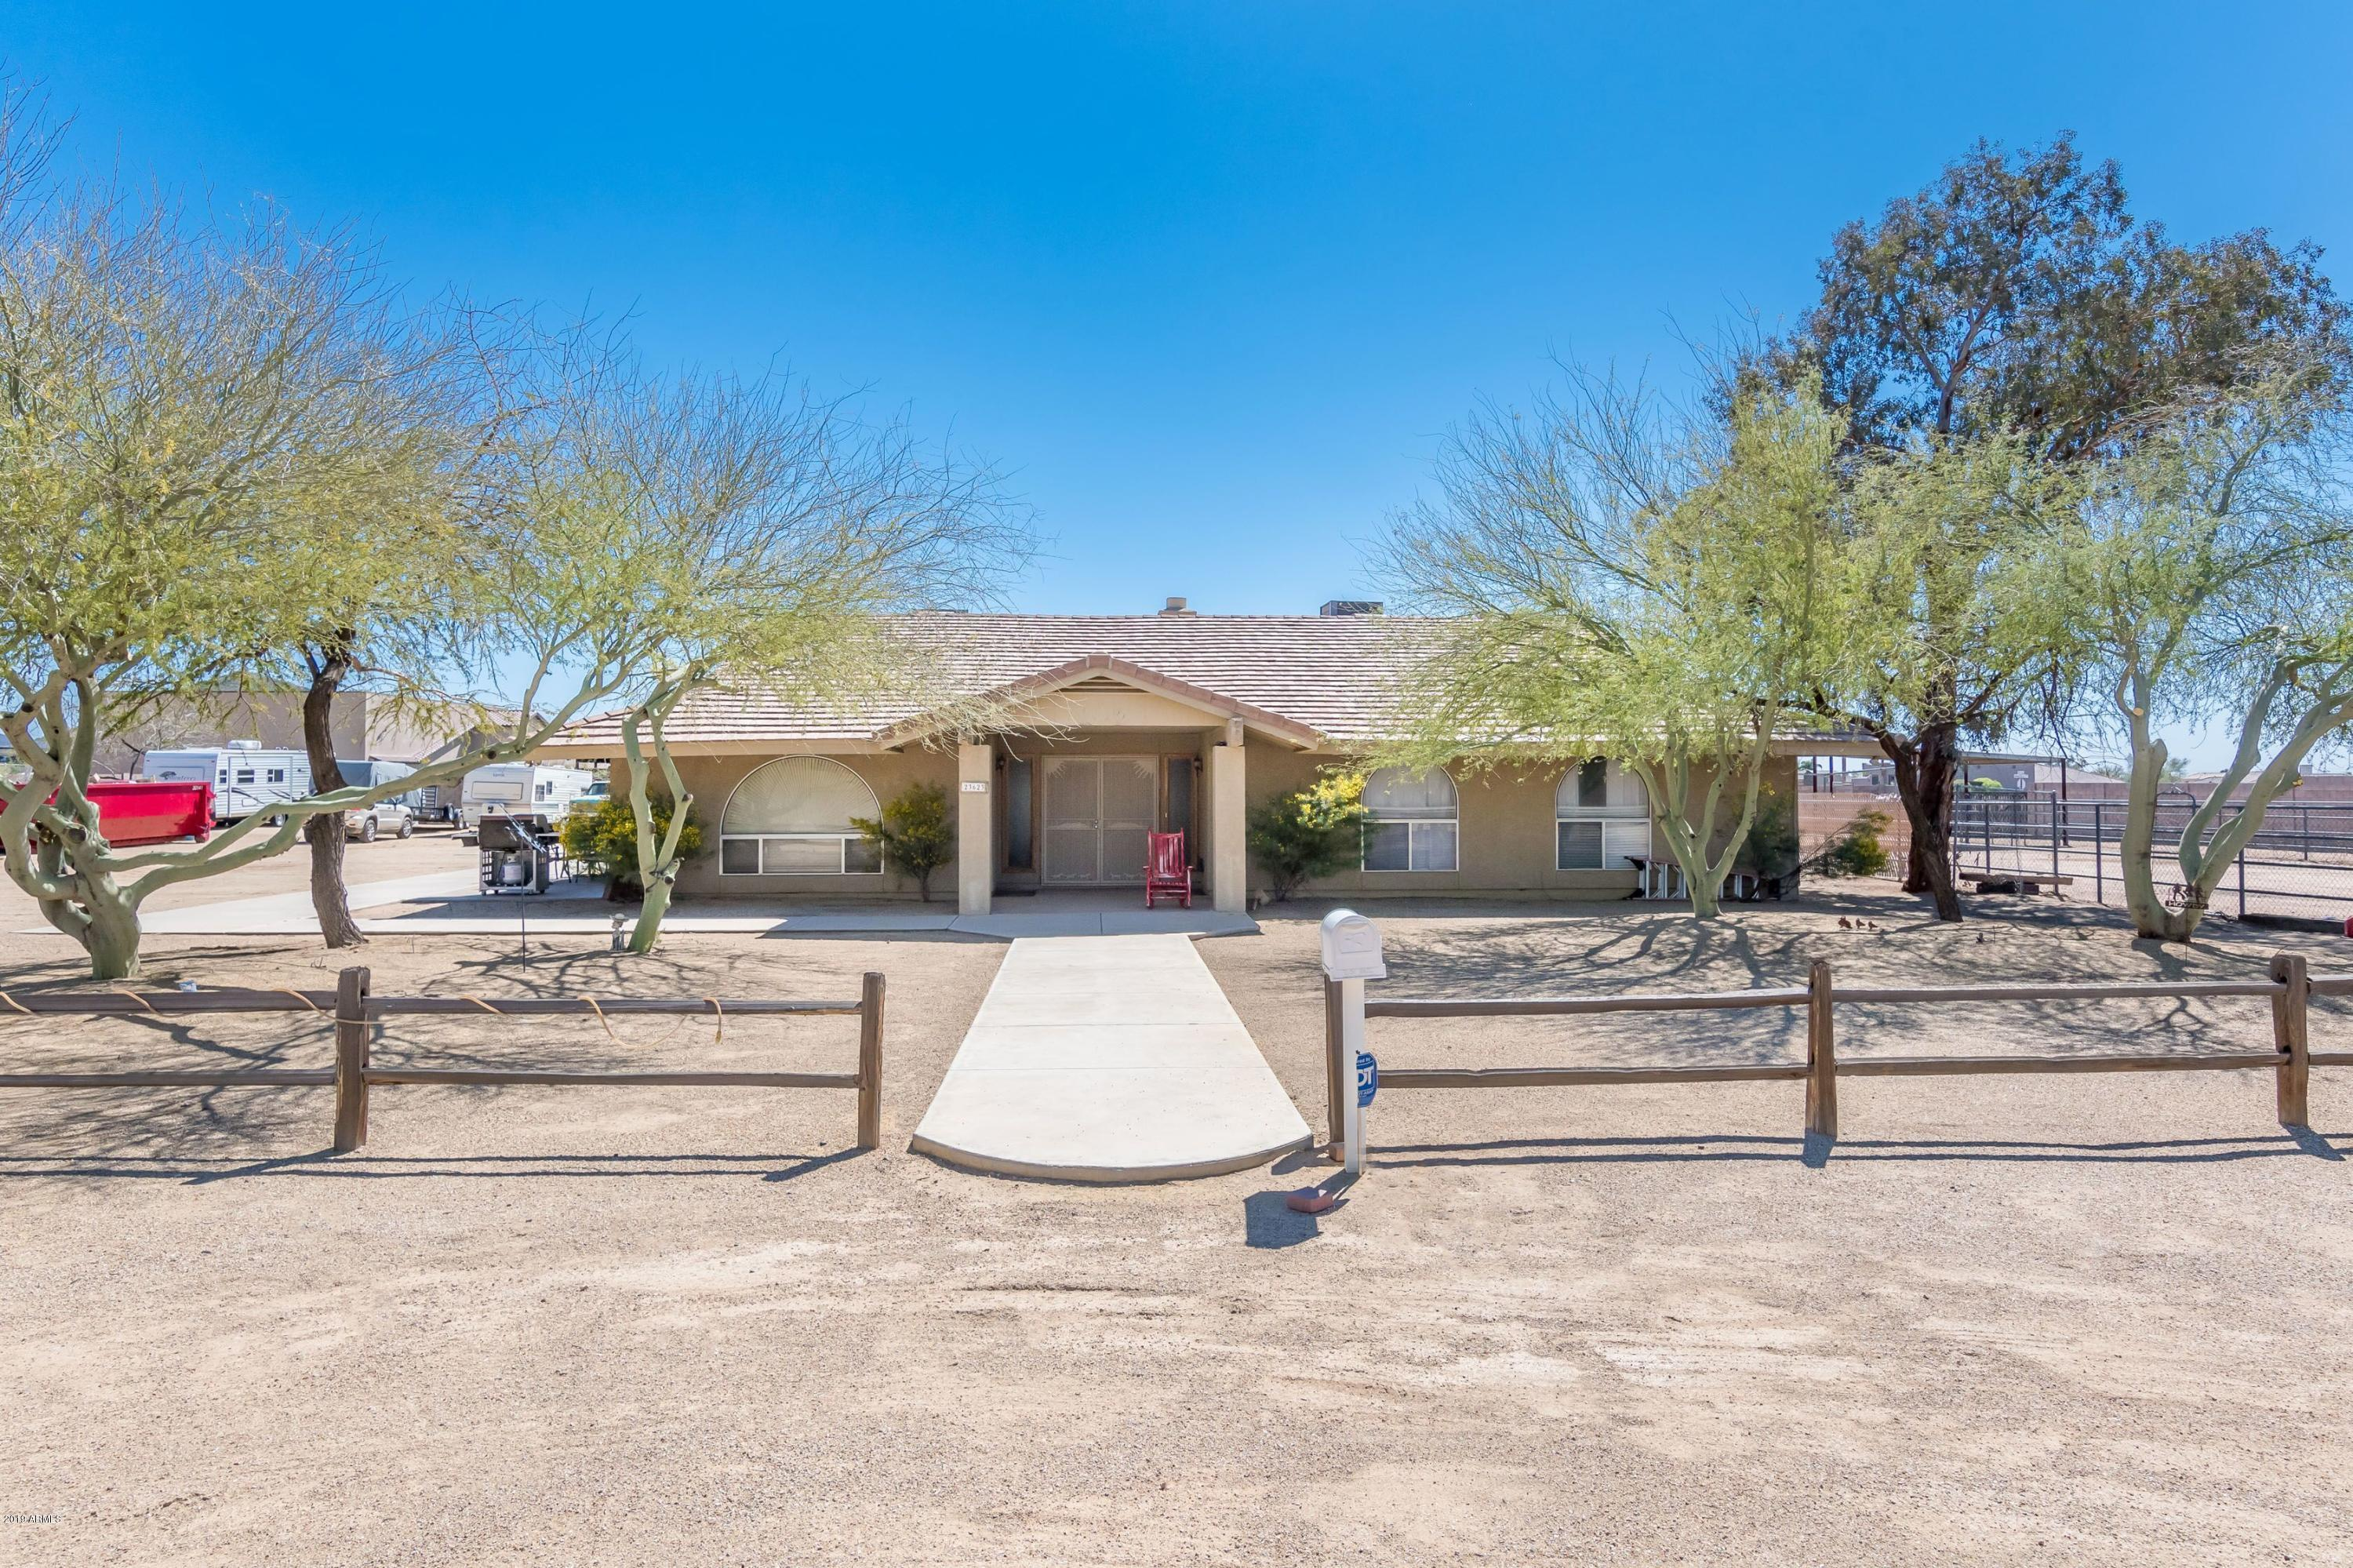 Photo of 23623 N 67TH Avenue, Glendale, AZ 85310